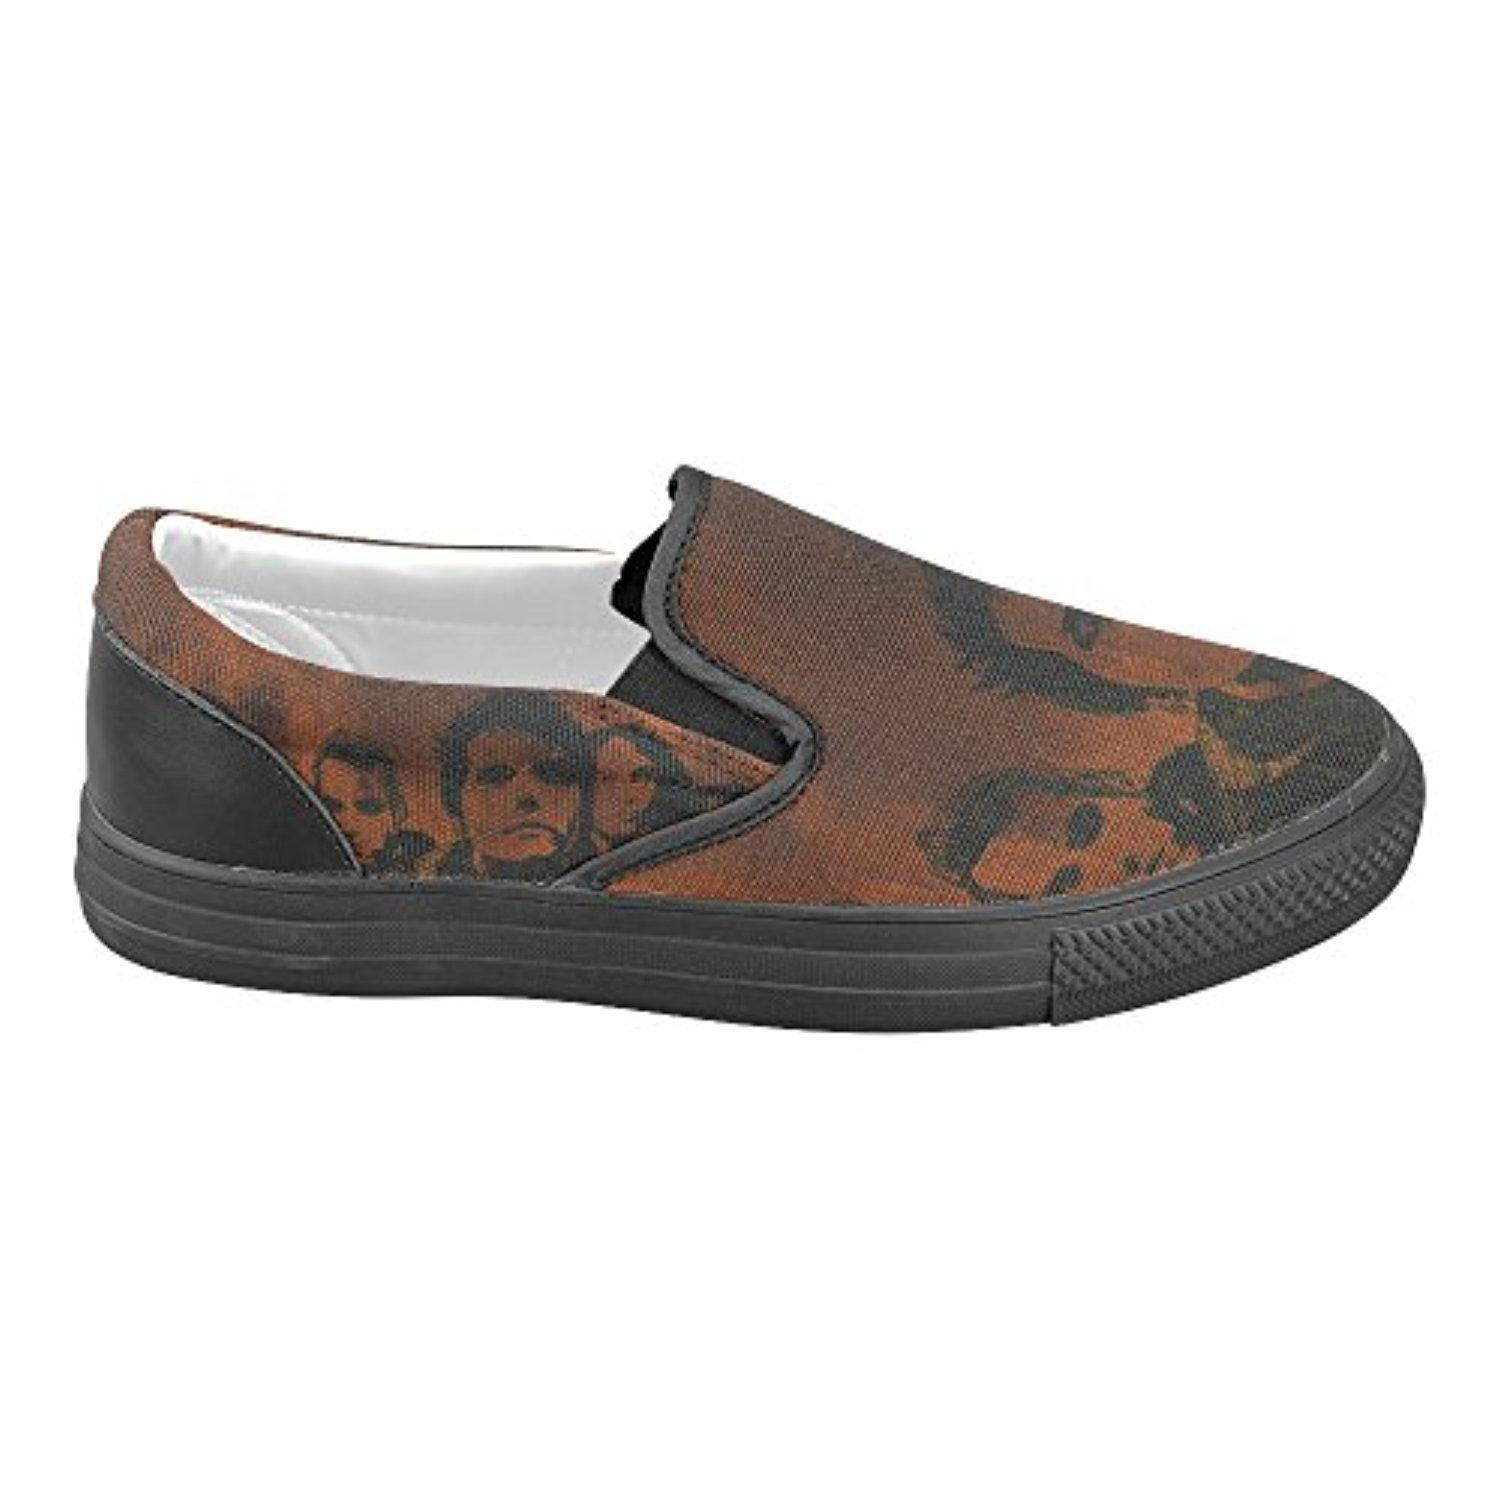 H-MOE Art My Chemical Romance Men's Slip-on Canvas Shoes Casual Flats Breathable Sneakers,Black